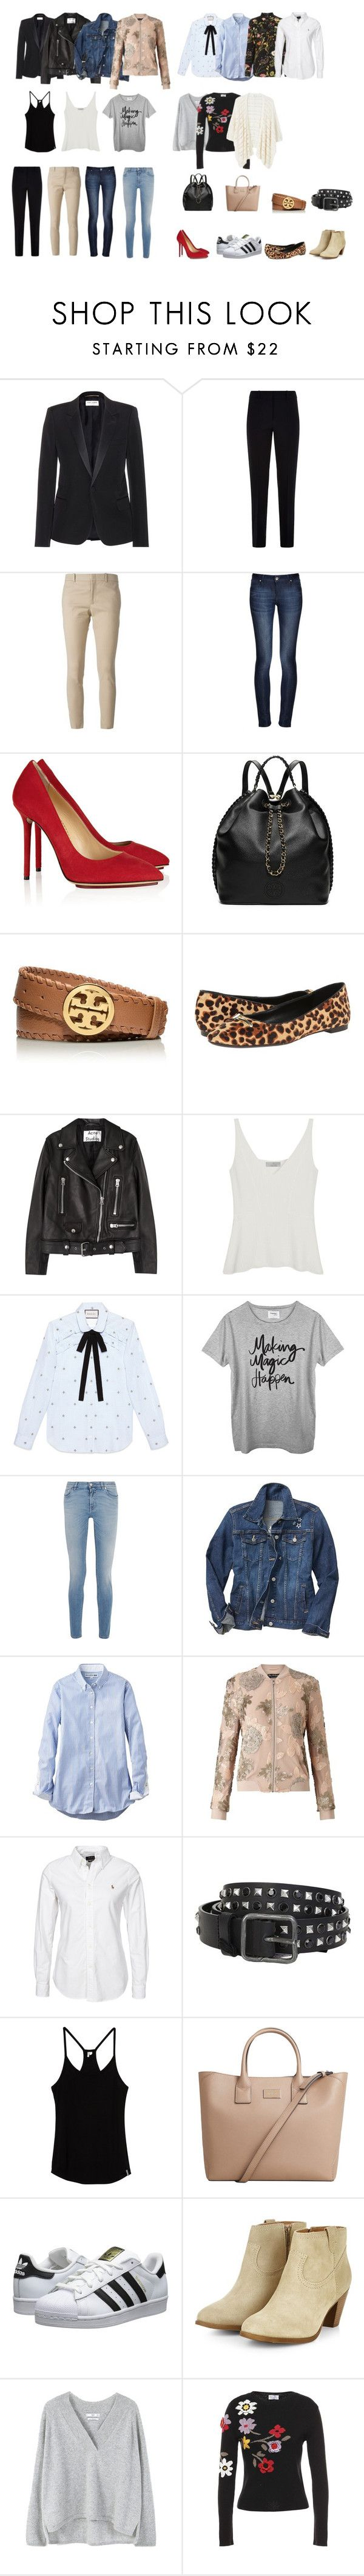 """fondo de armario femenino"" by natyapshopper on Polyvore featuring moda, Yves Saint Laurent, Armani Collezioni, Gucci, DL1961 Premium Denim, Charlotte Olympia, Tory Burch, Nine West, Acne Studios y Mulberry"